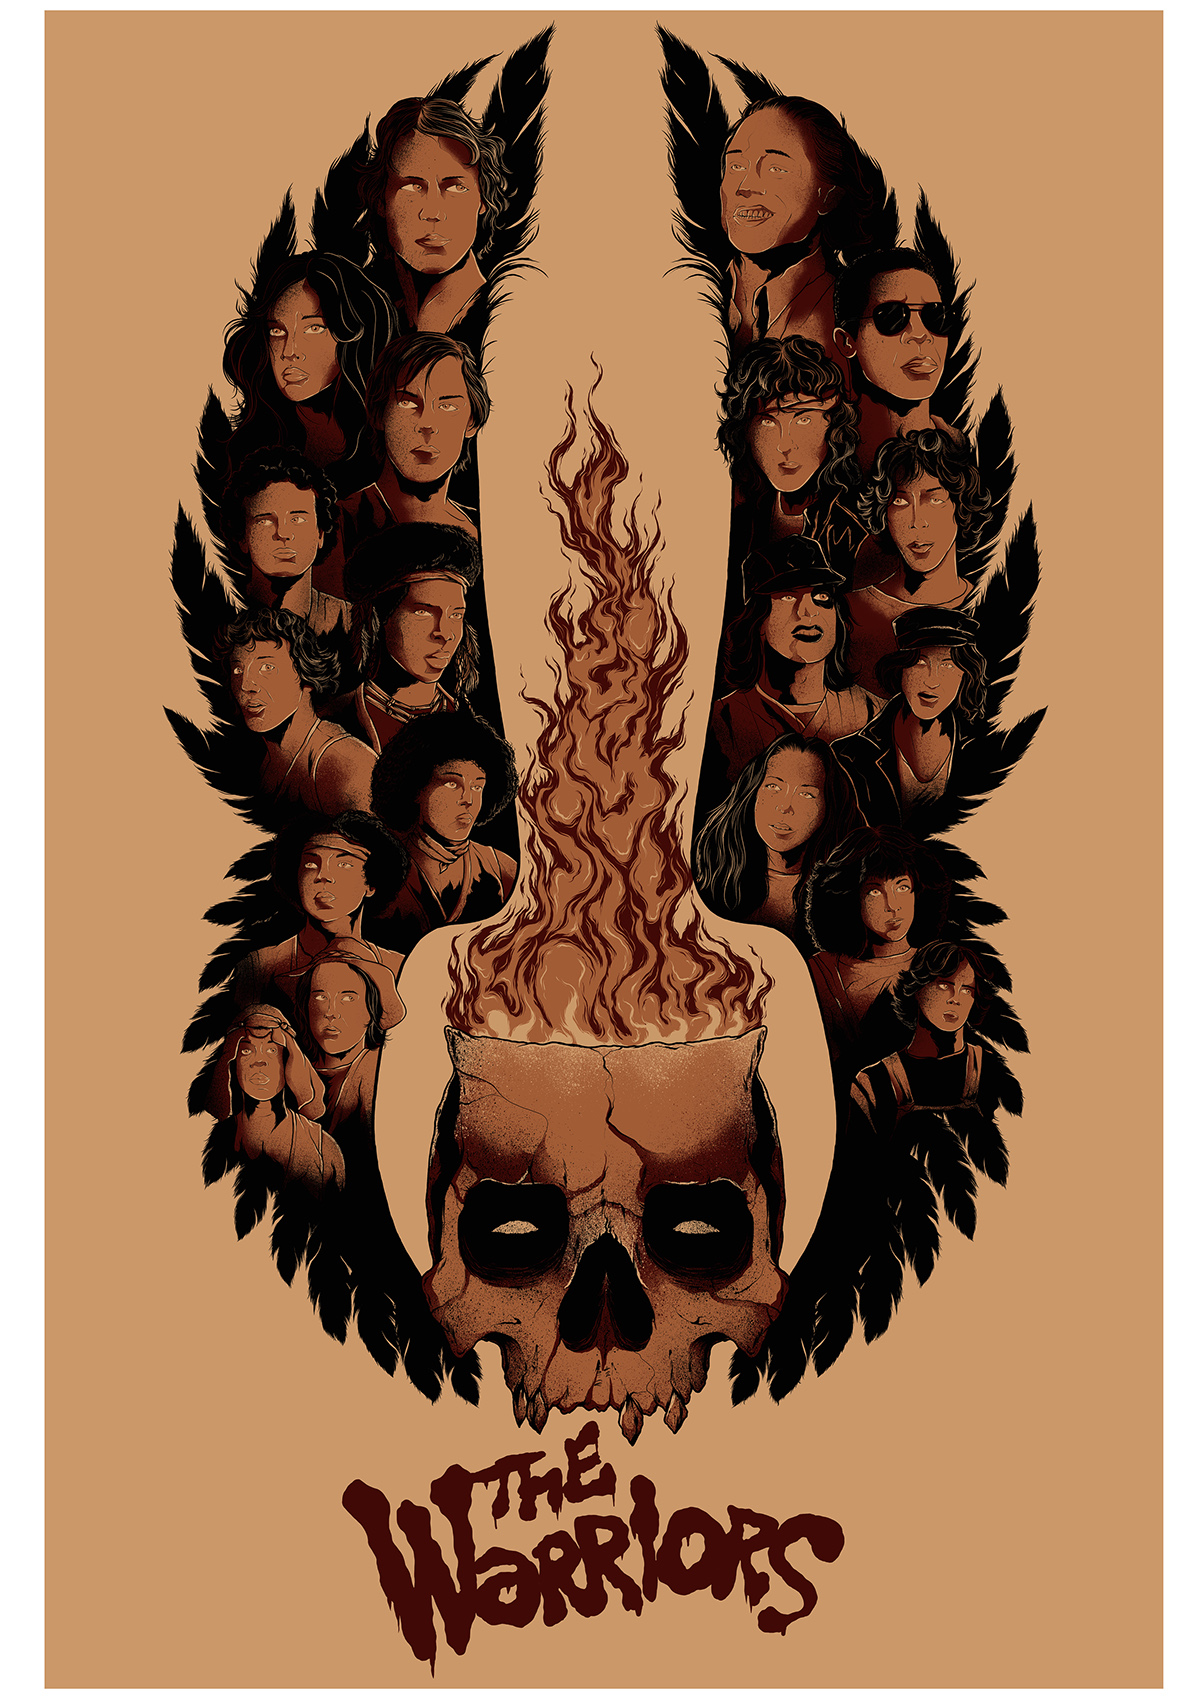 The Warriors poster Joshua Kelly